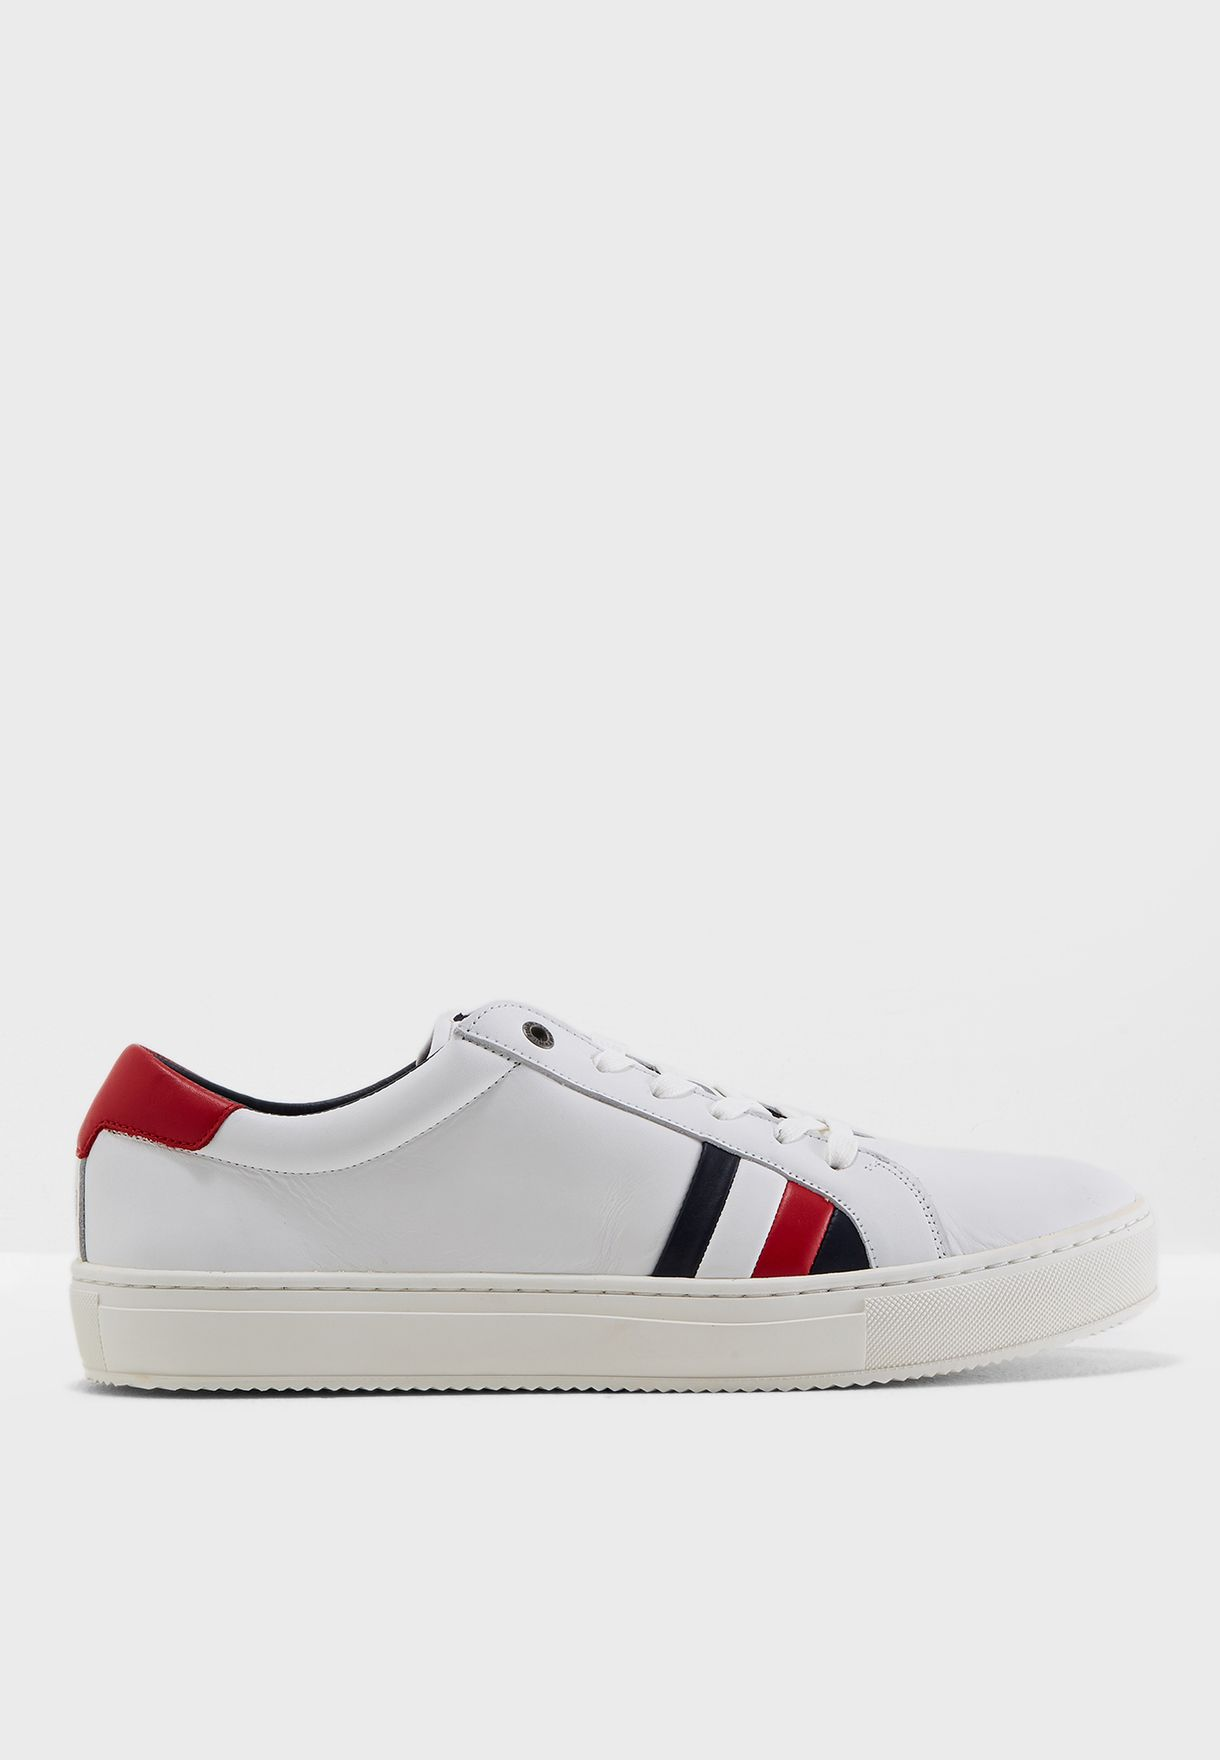 6c7e8fa6a25882 Shop Tommy Hilfiger white Corporate Leather Detail Sneakers ...